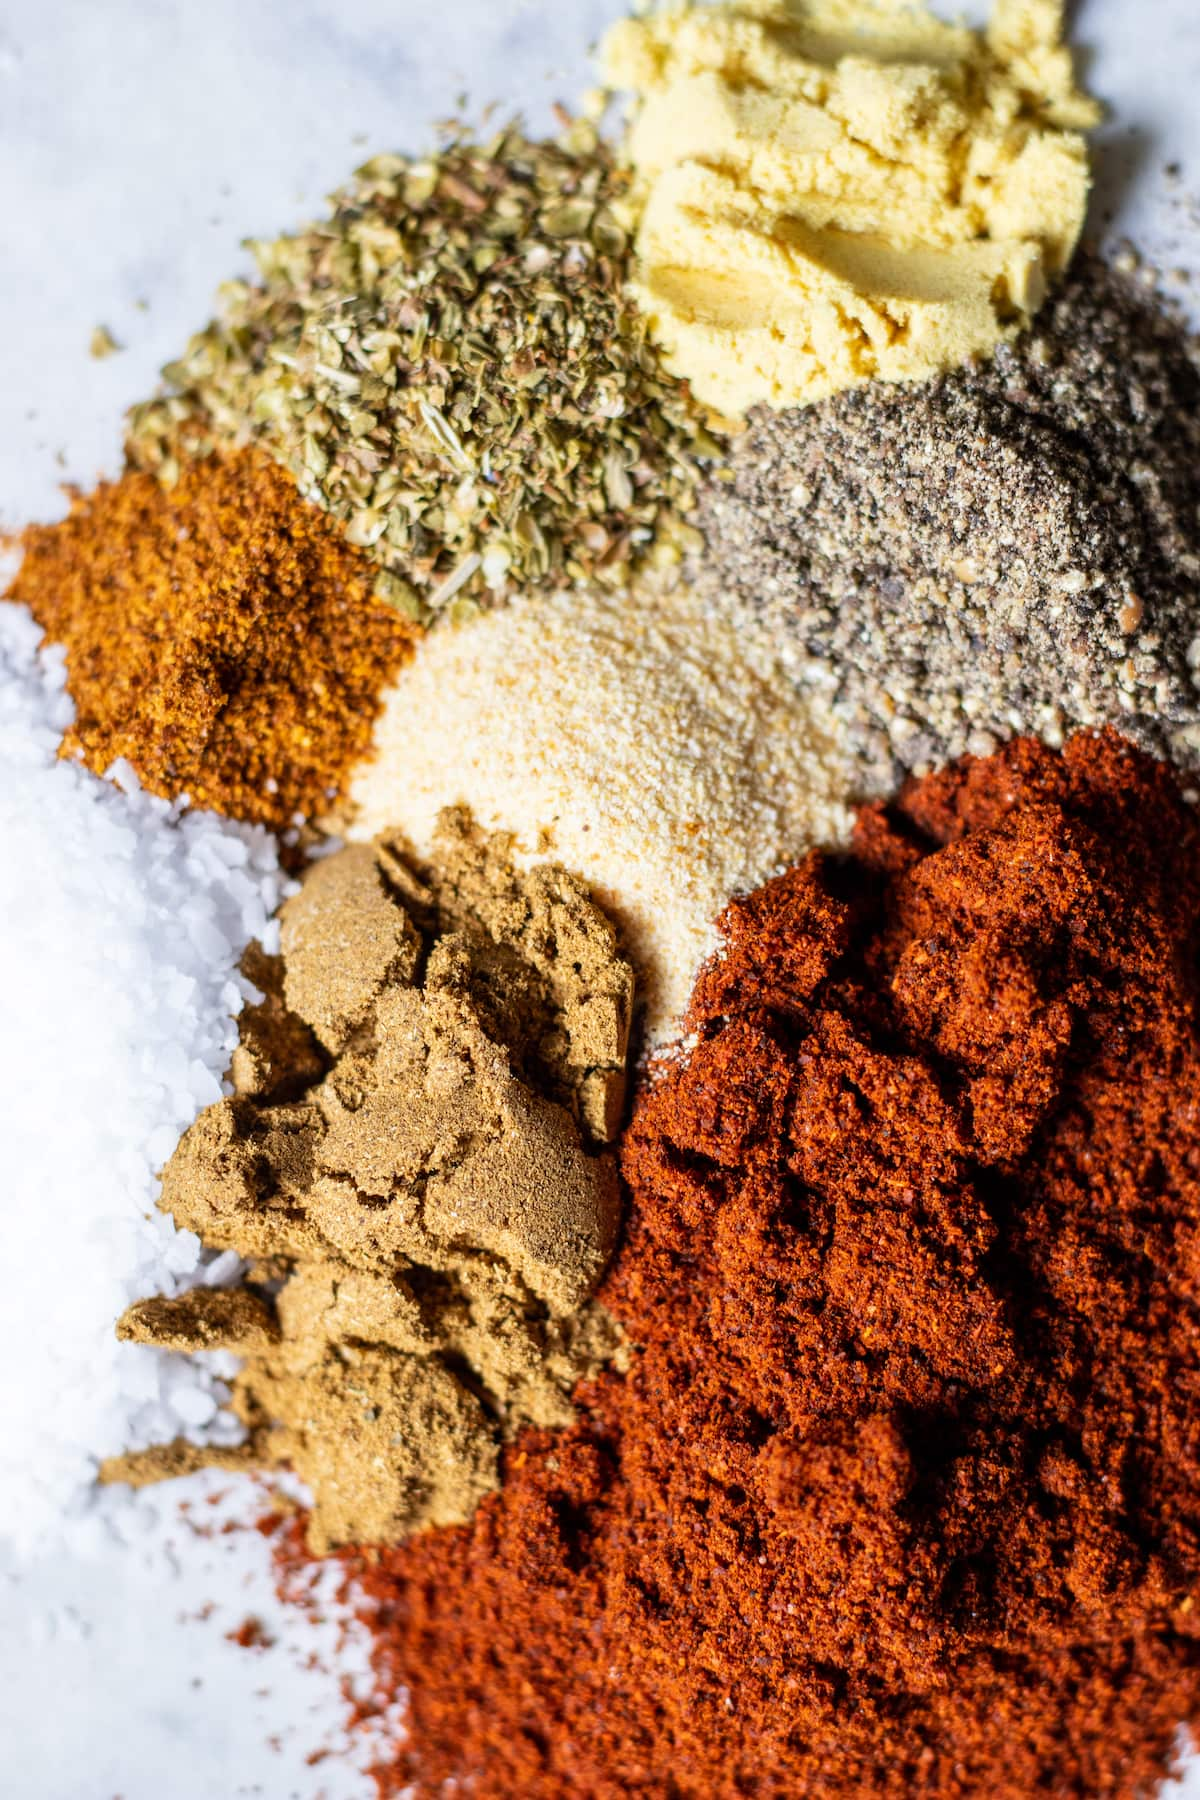 spices for the rub on a piece of parchment paper